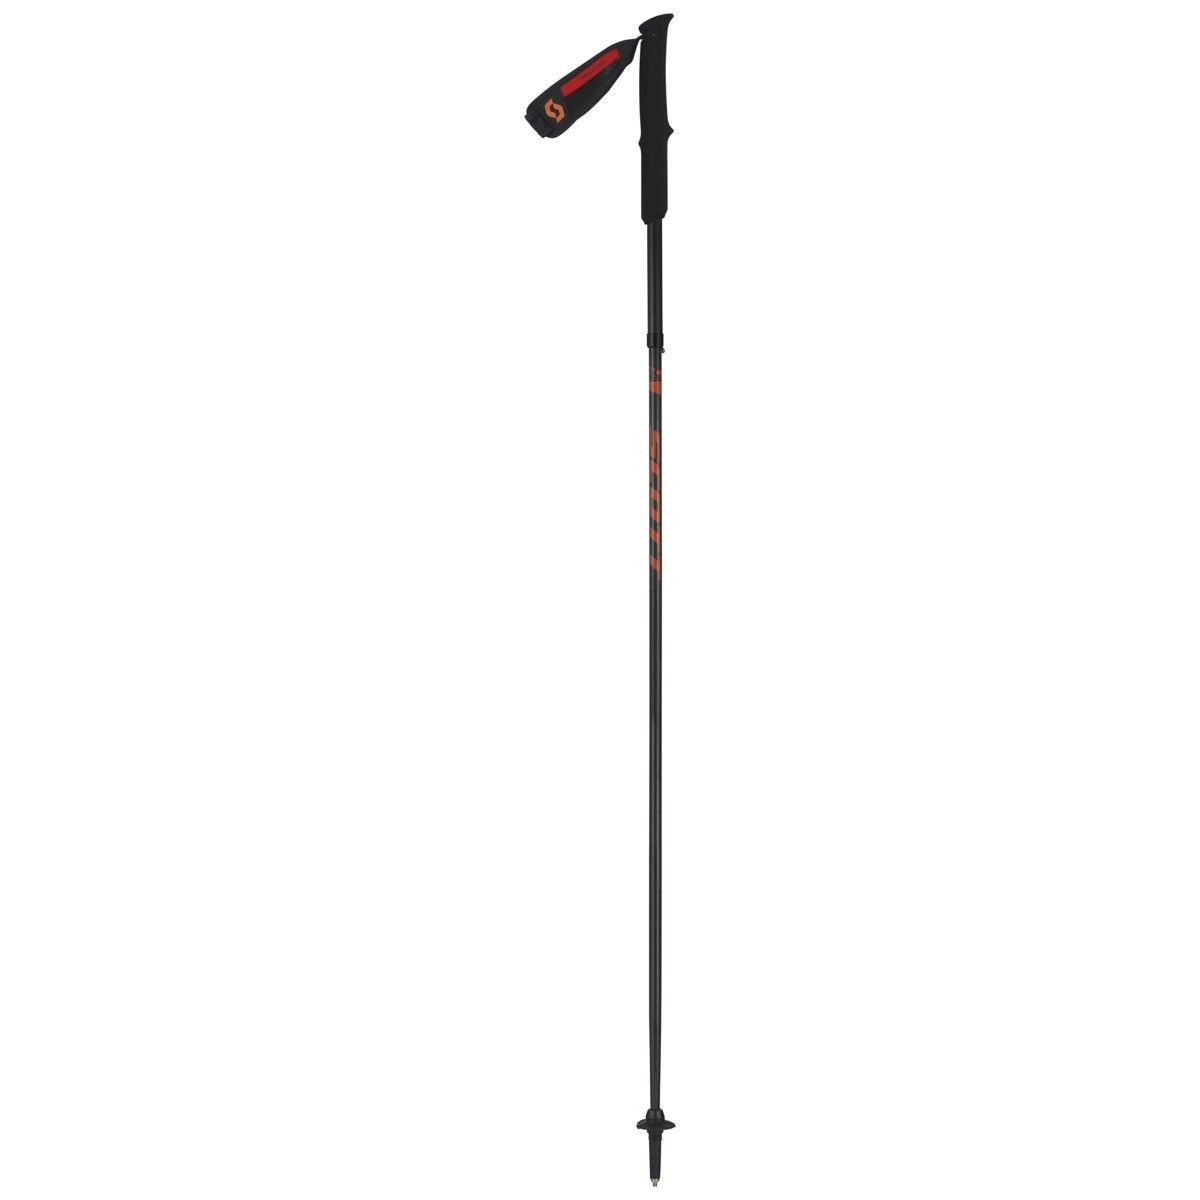 Scott Trail Carbon Pole Schwarz, Wander-& Trekkingstock, 130 cm